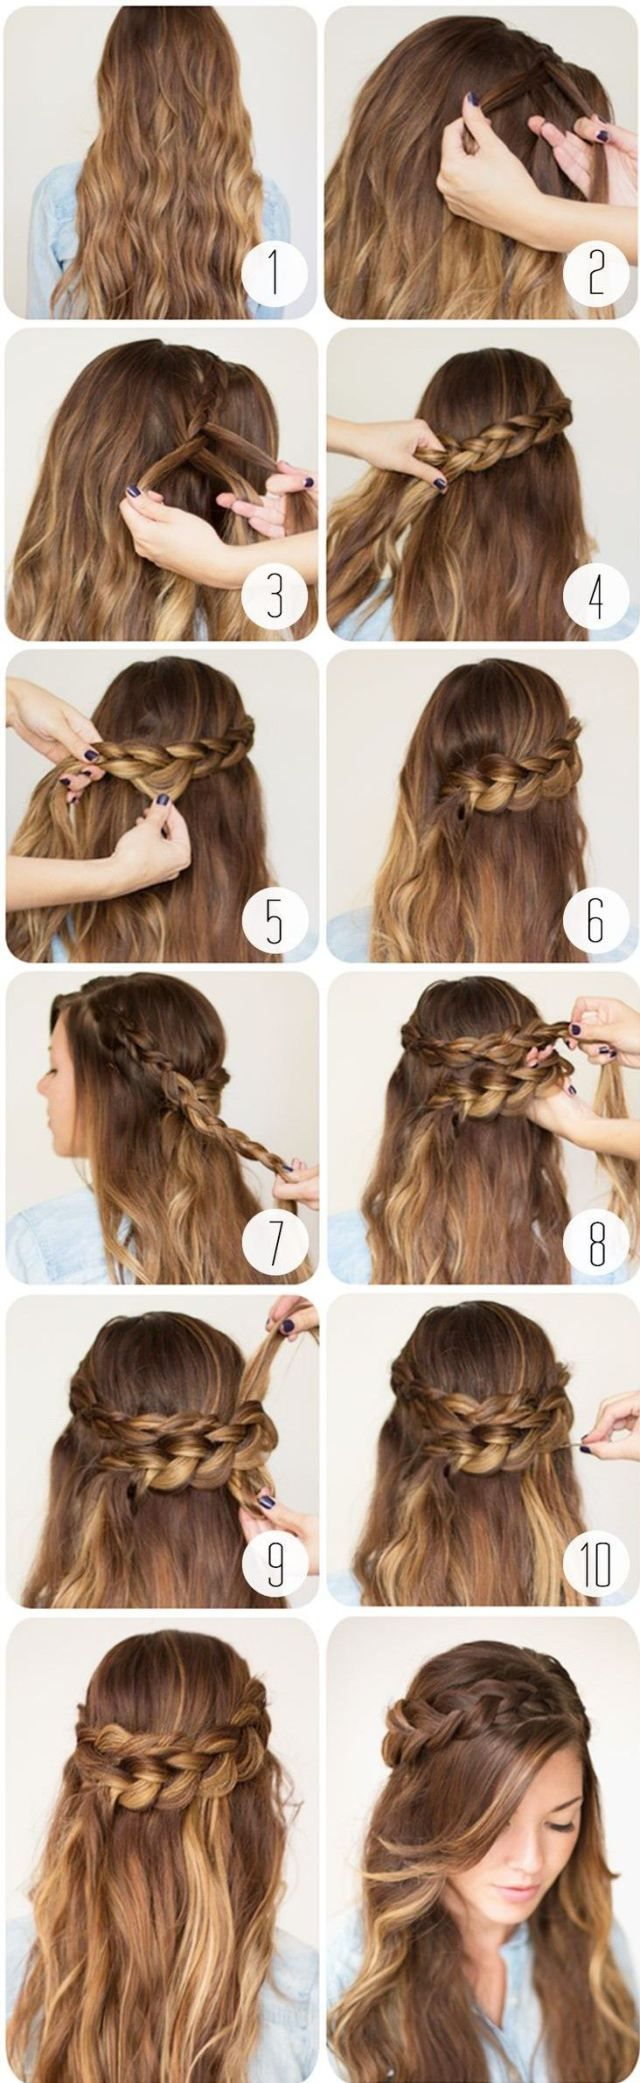 Prime 1000 Ideas About Easy Braided Hairstyles On Pinterest Types Of Hairstyle Inspiration Daily Dogsangcom